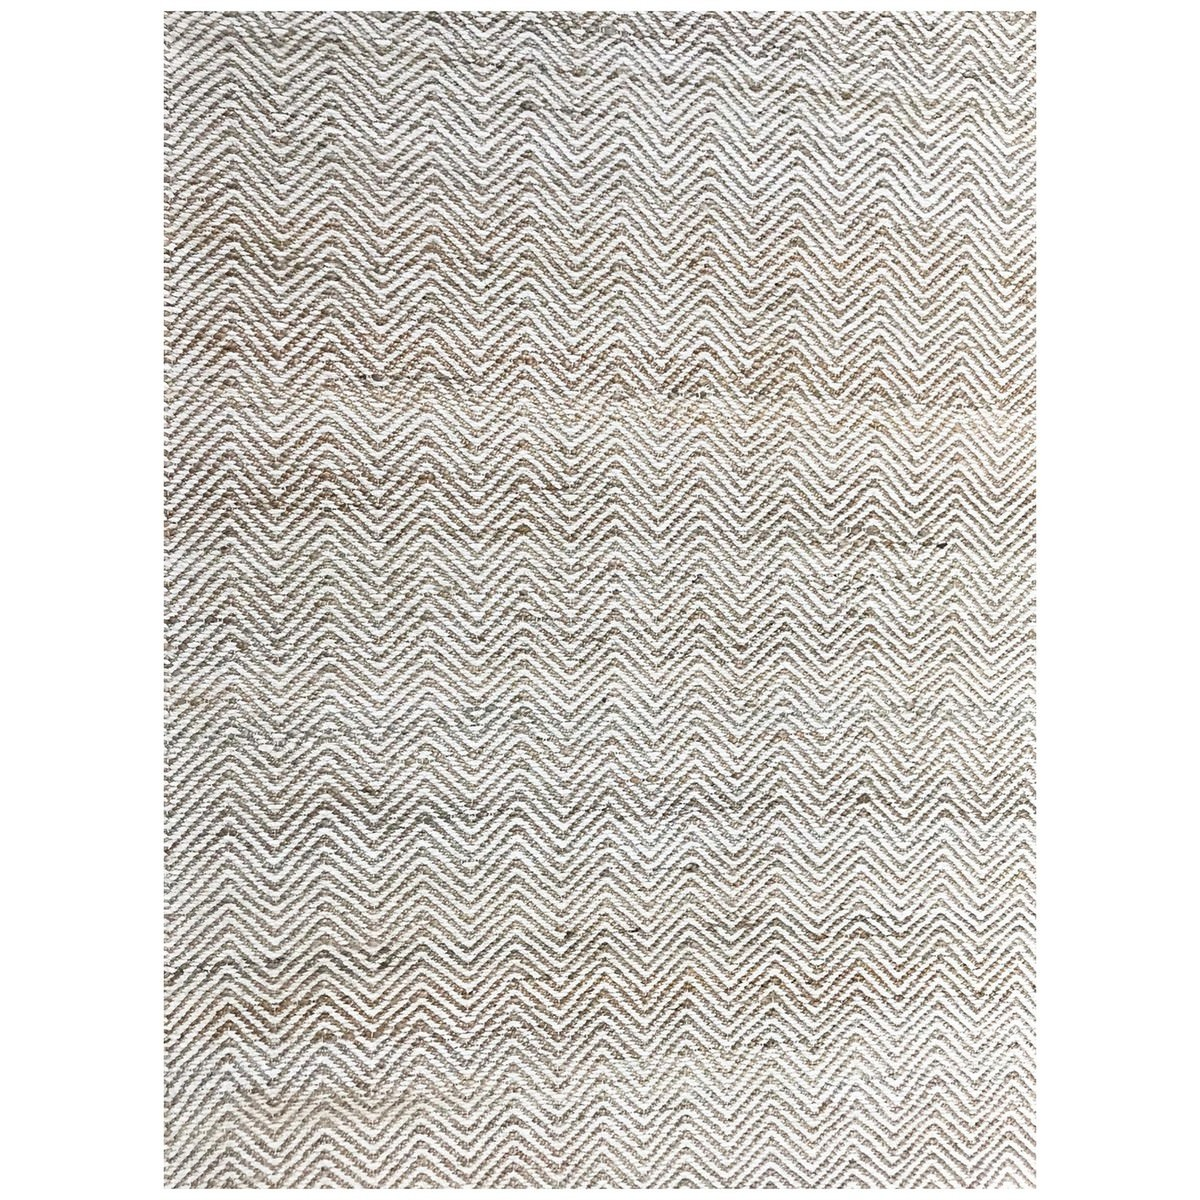 Handwoven Jute Rug 1011 in Natural - 110x160cm